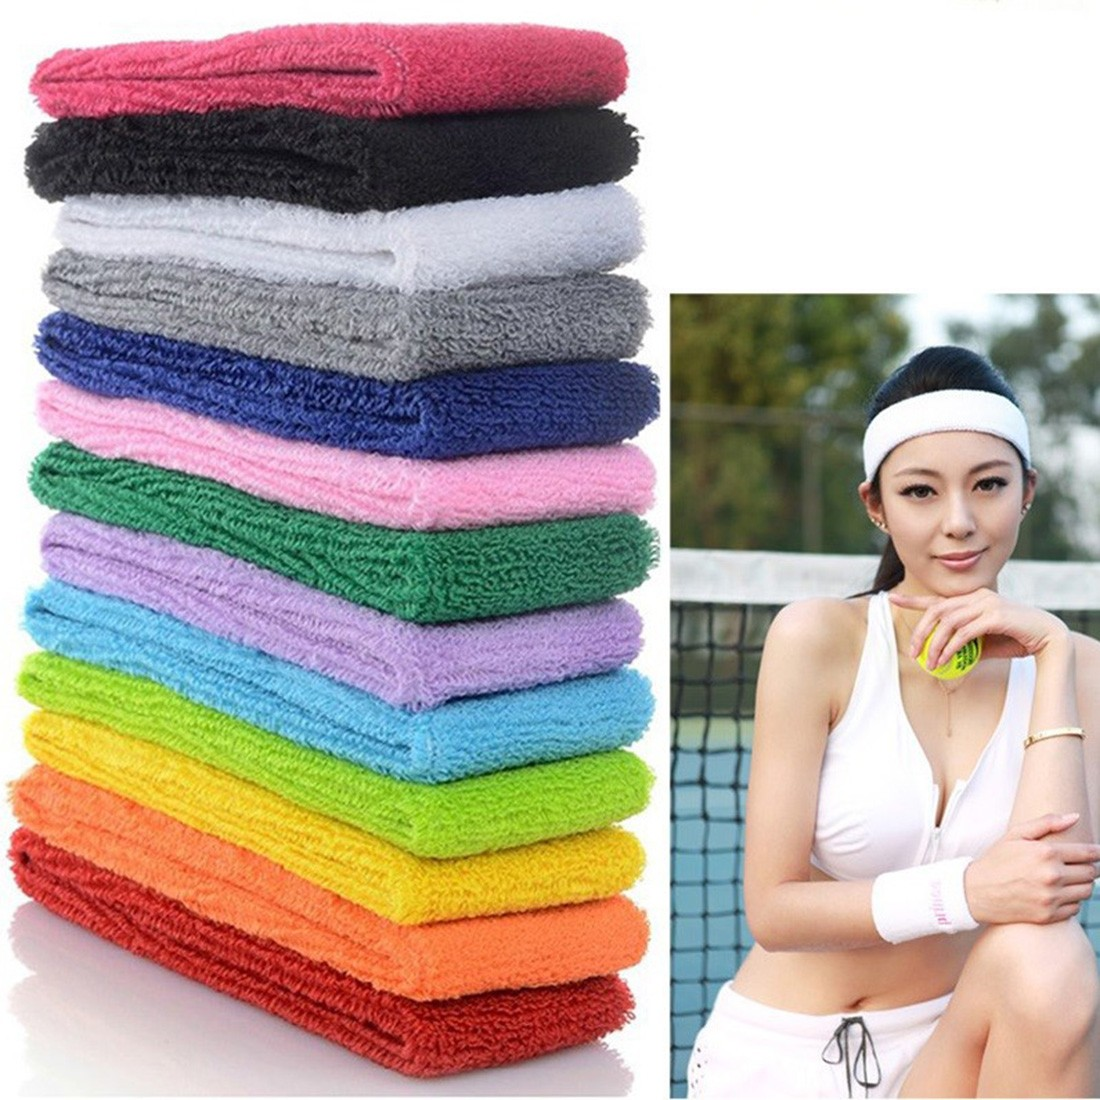 Sports Accessories Rexchi Weave Elastic Yoga Sweatband Sports Headband Silicone Antiskid Women Men Hair Band Fitness For Volleyball Tennis Running